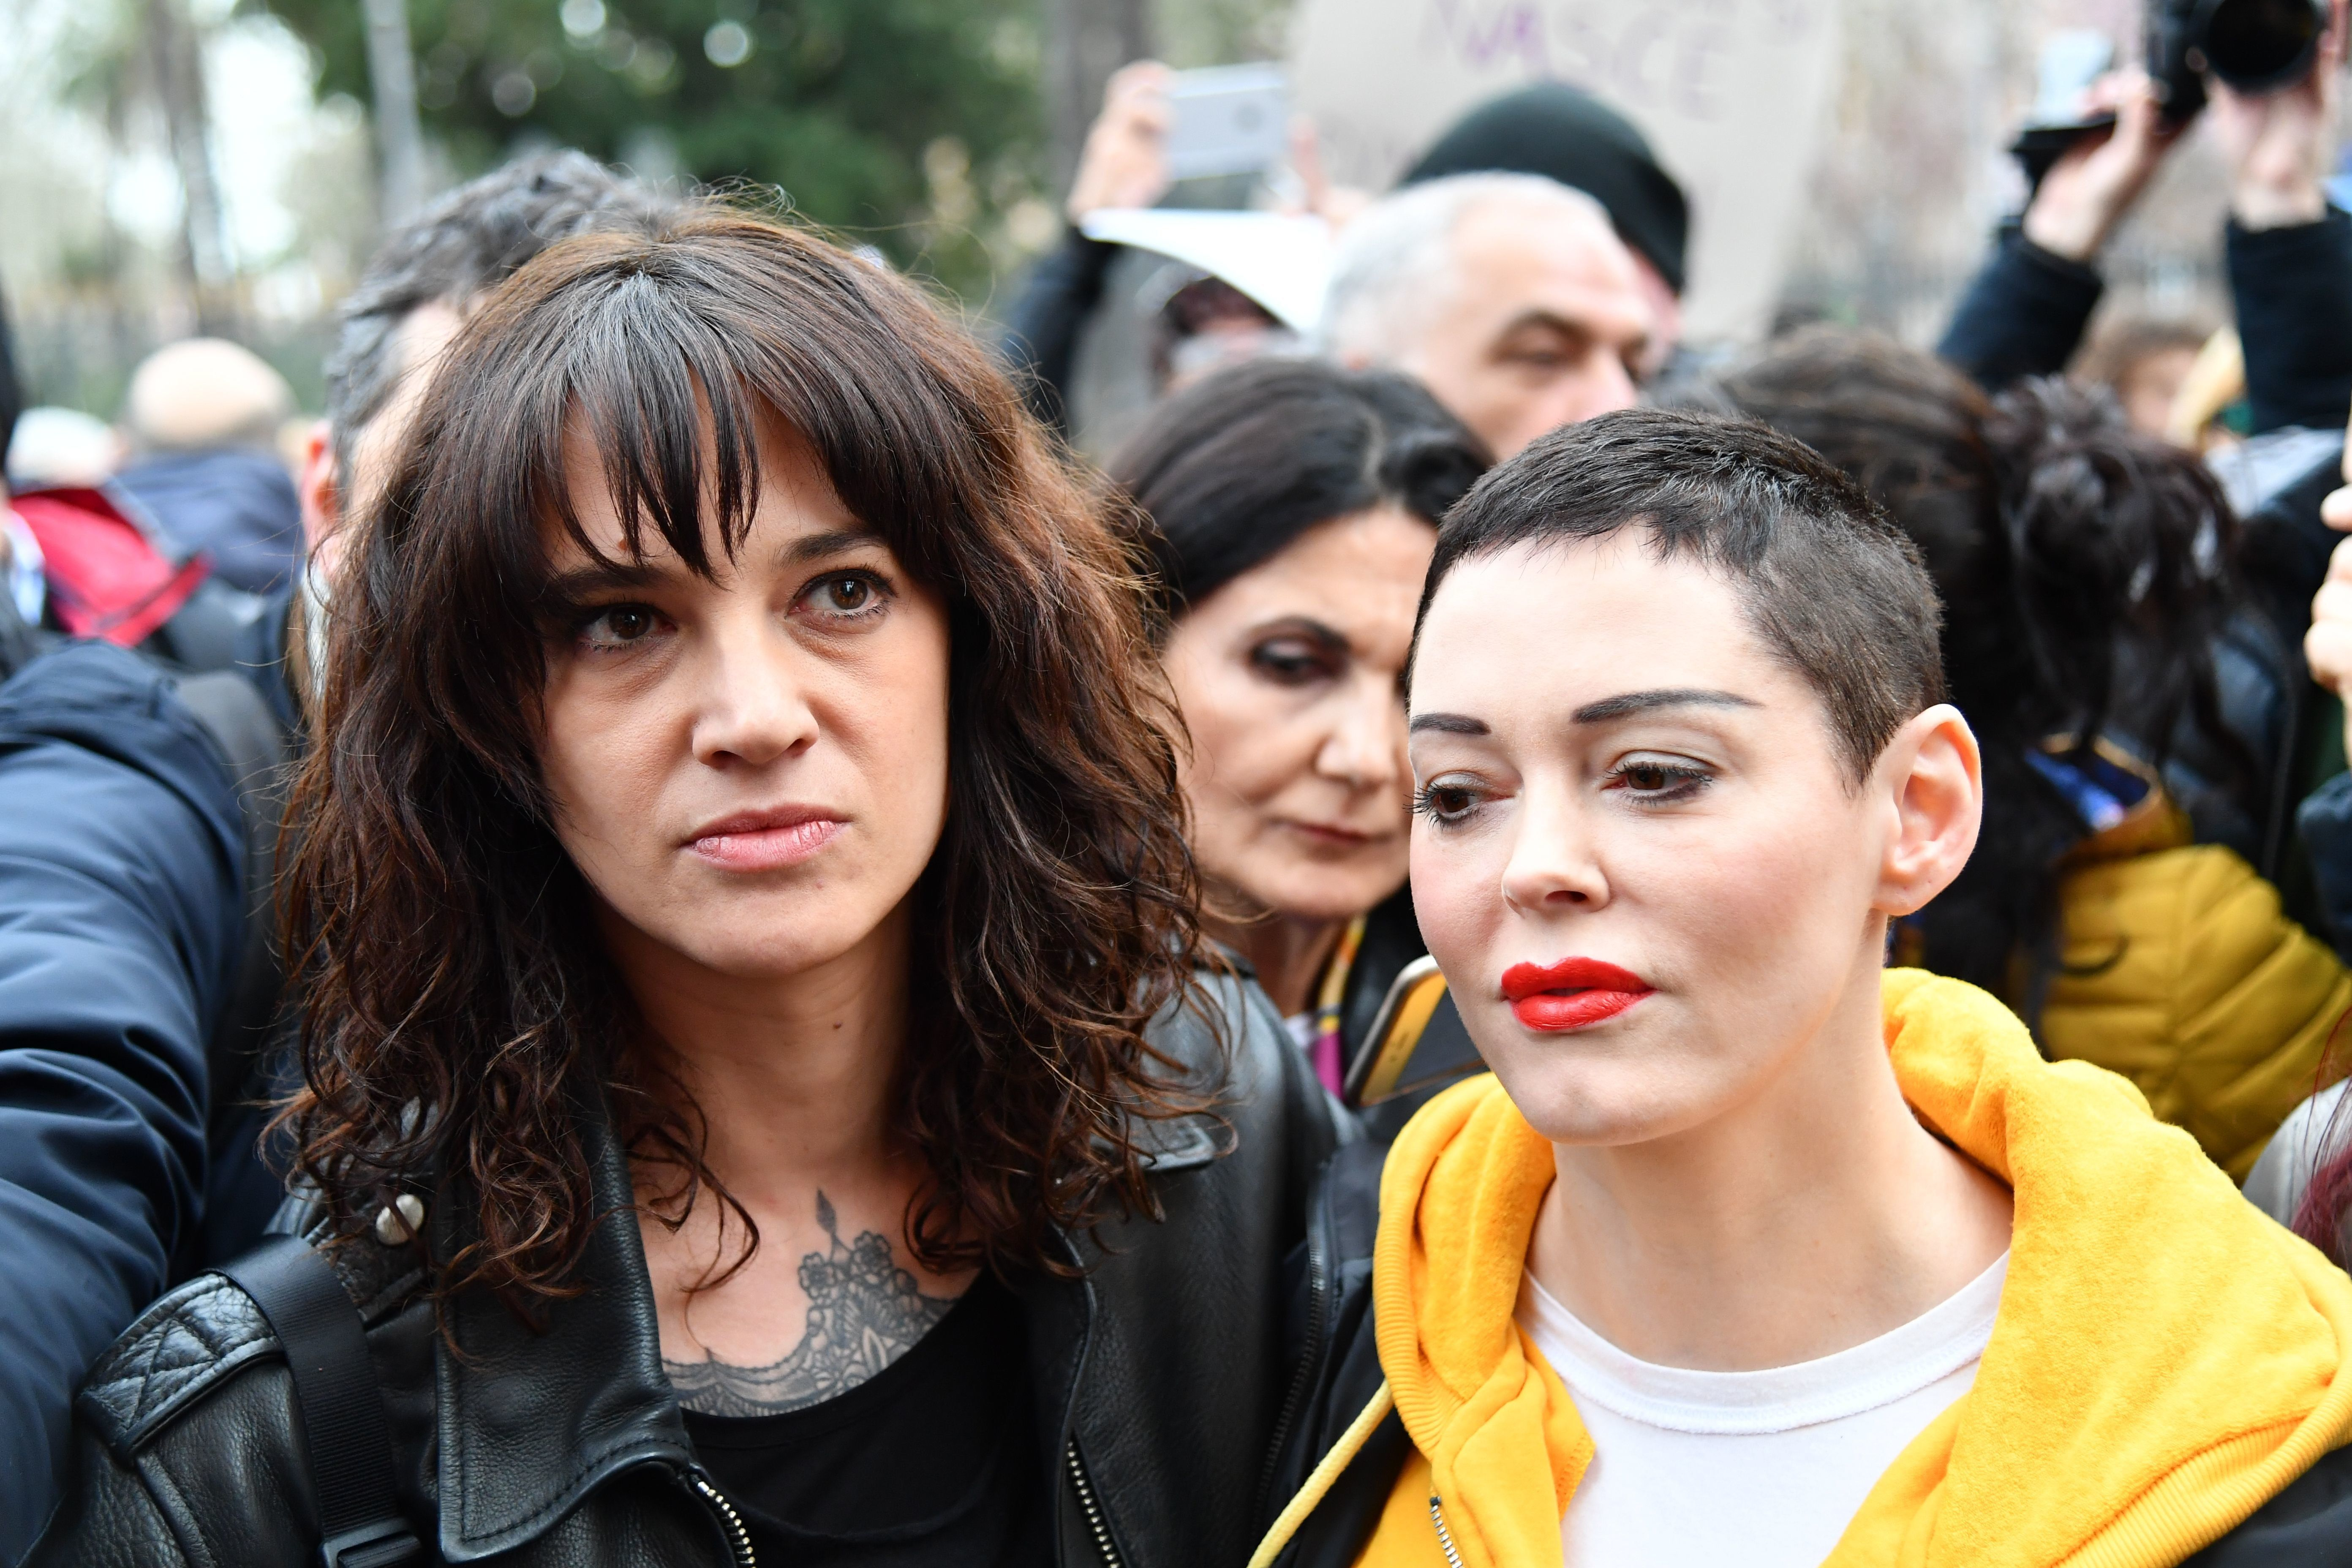 TOPSHOT - Italian actress Asia Argento (L) and US singer and actress Rose McGowan, who both accuse Harvey Weinstein of sexual assault, take part in a march organised by 'Non Una Di Meno' (Me too) movement on March 8, 2018 as part of the International Women's Day in Rome. - 'Non Una Di Meno', which translates as Not One (Woman) Less, is the equivalent of the movement that grew out of the Harvey Weinstein-spurred sexual harassment and rape revelations. (Photo by Alberto PIZZOLI / AFP)        (Photo credit should read ALBERTO PIZZOLI/AFP/Getty Images)